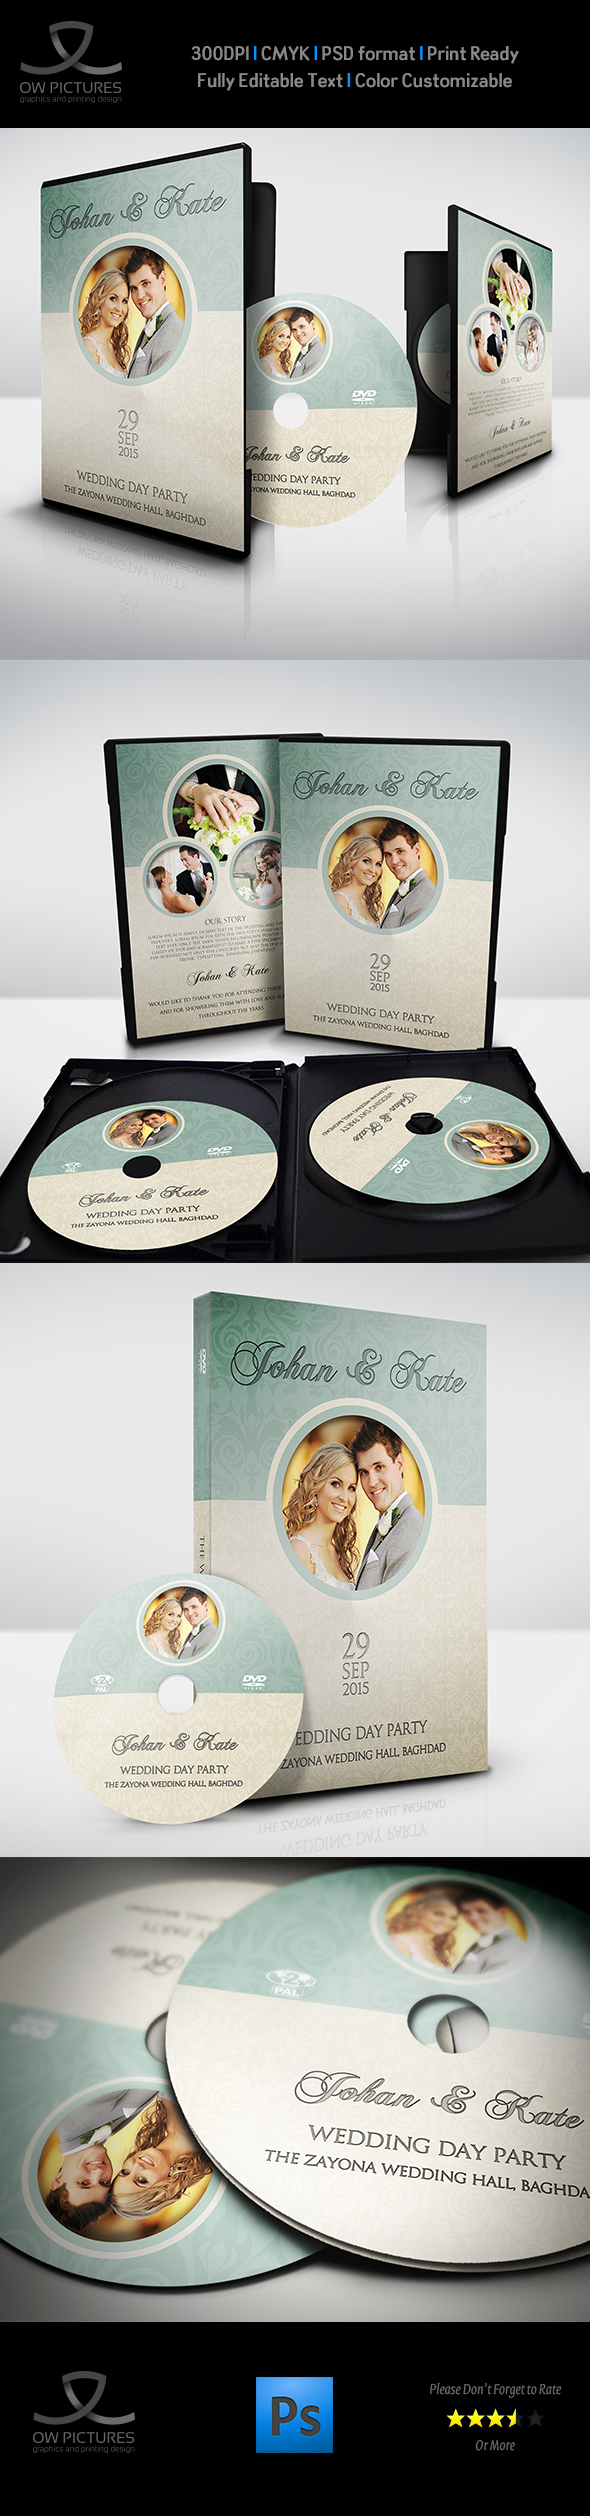 Wedding dvd cover and dvd label template vol8 on behance pronofoot35fo Choice Image